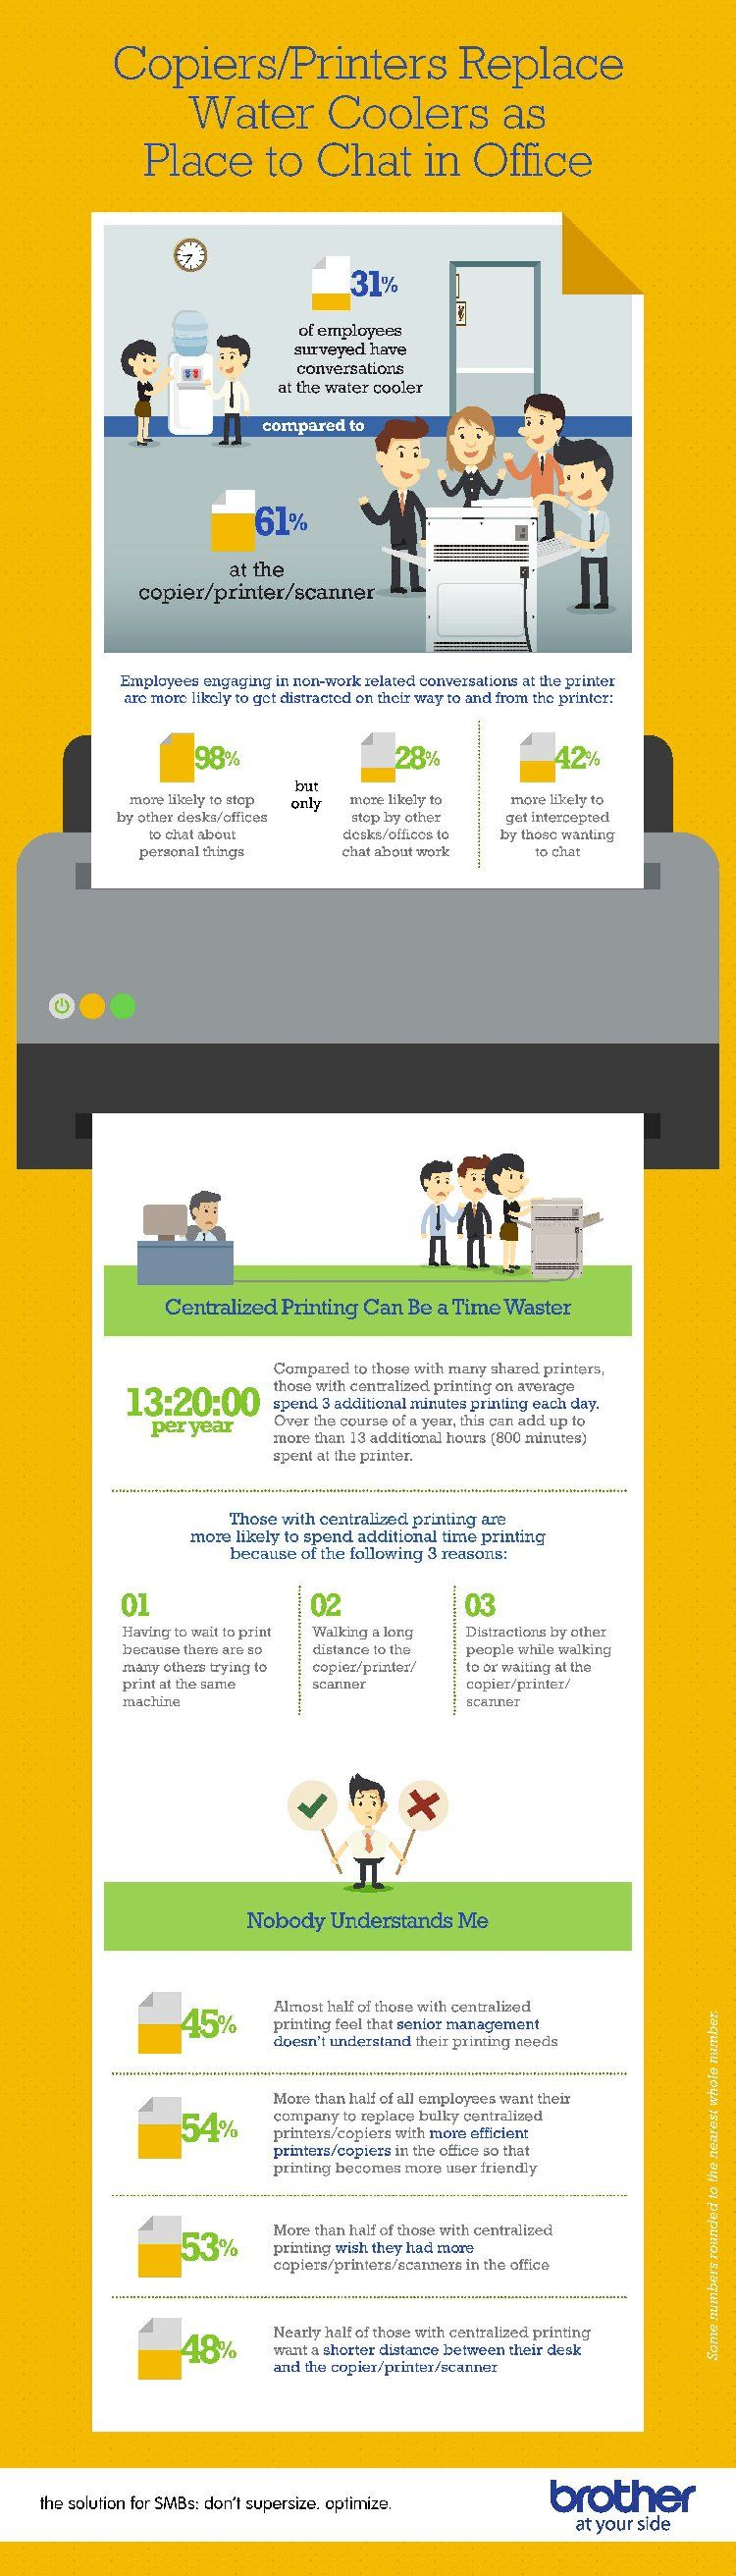 Centralized printing can help increase your office efficency and productivity.